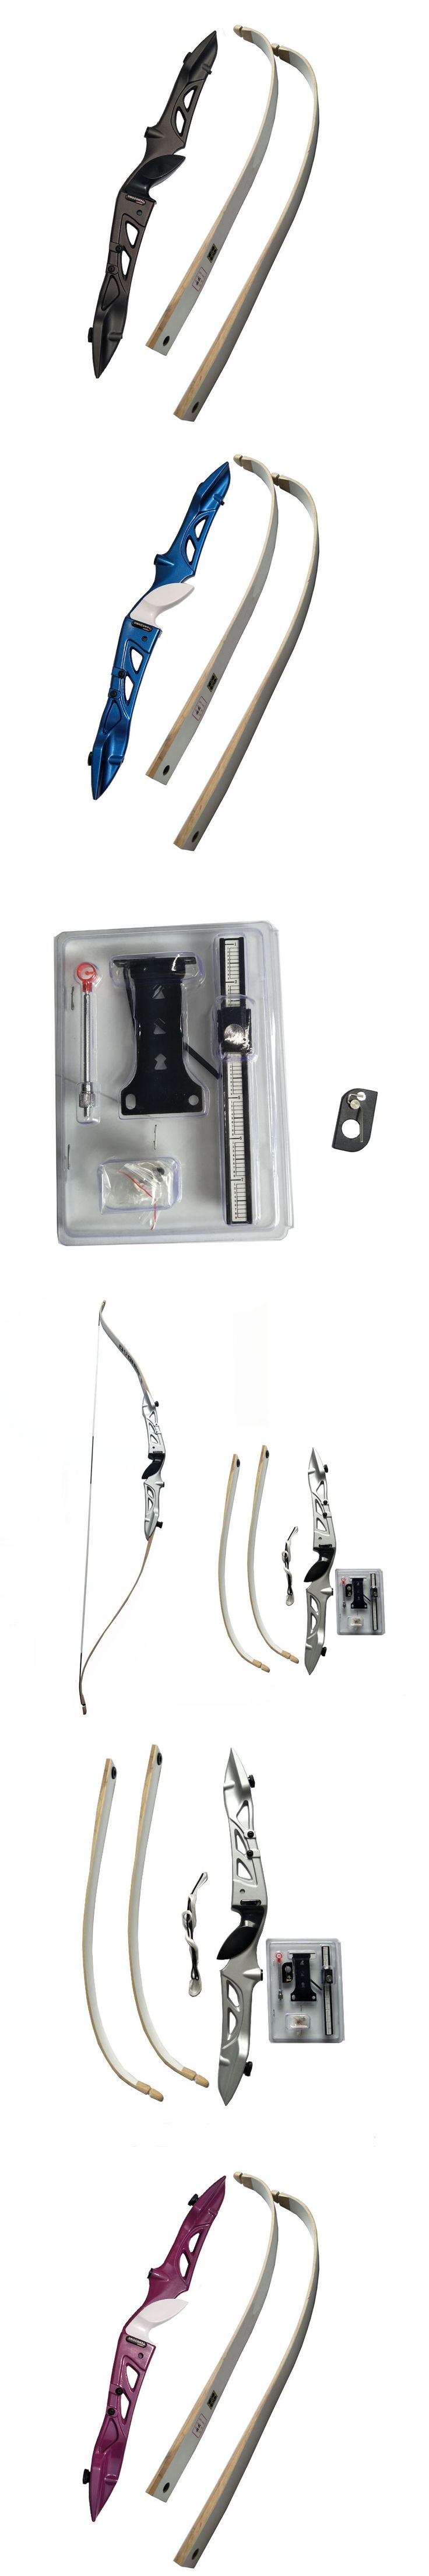 66inch Recurve Bow Draw Weight 16lbs to 40lbs Longbow Aluminum alloy Bow Hand a Recurve Bow Sight and Arrow Rest